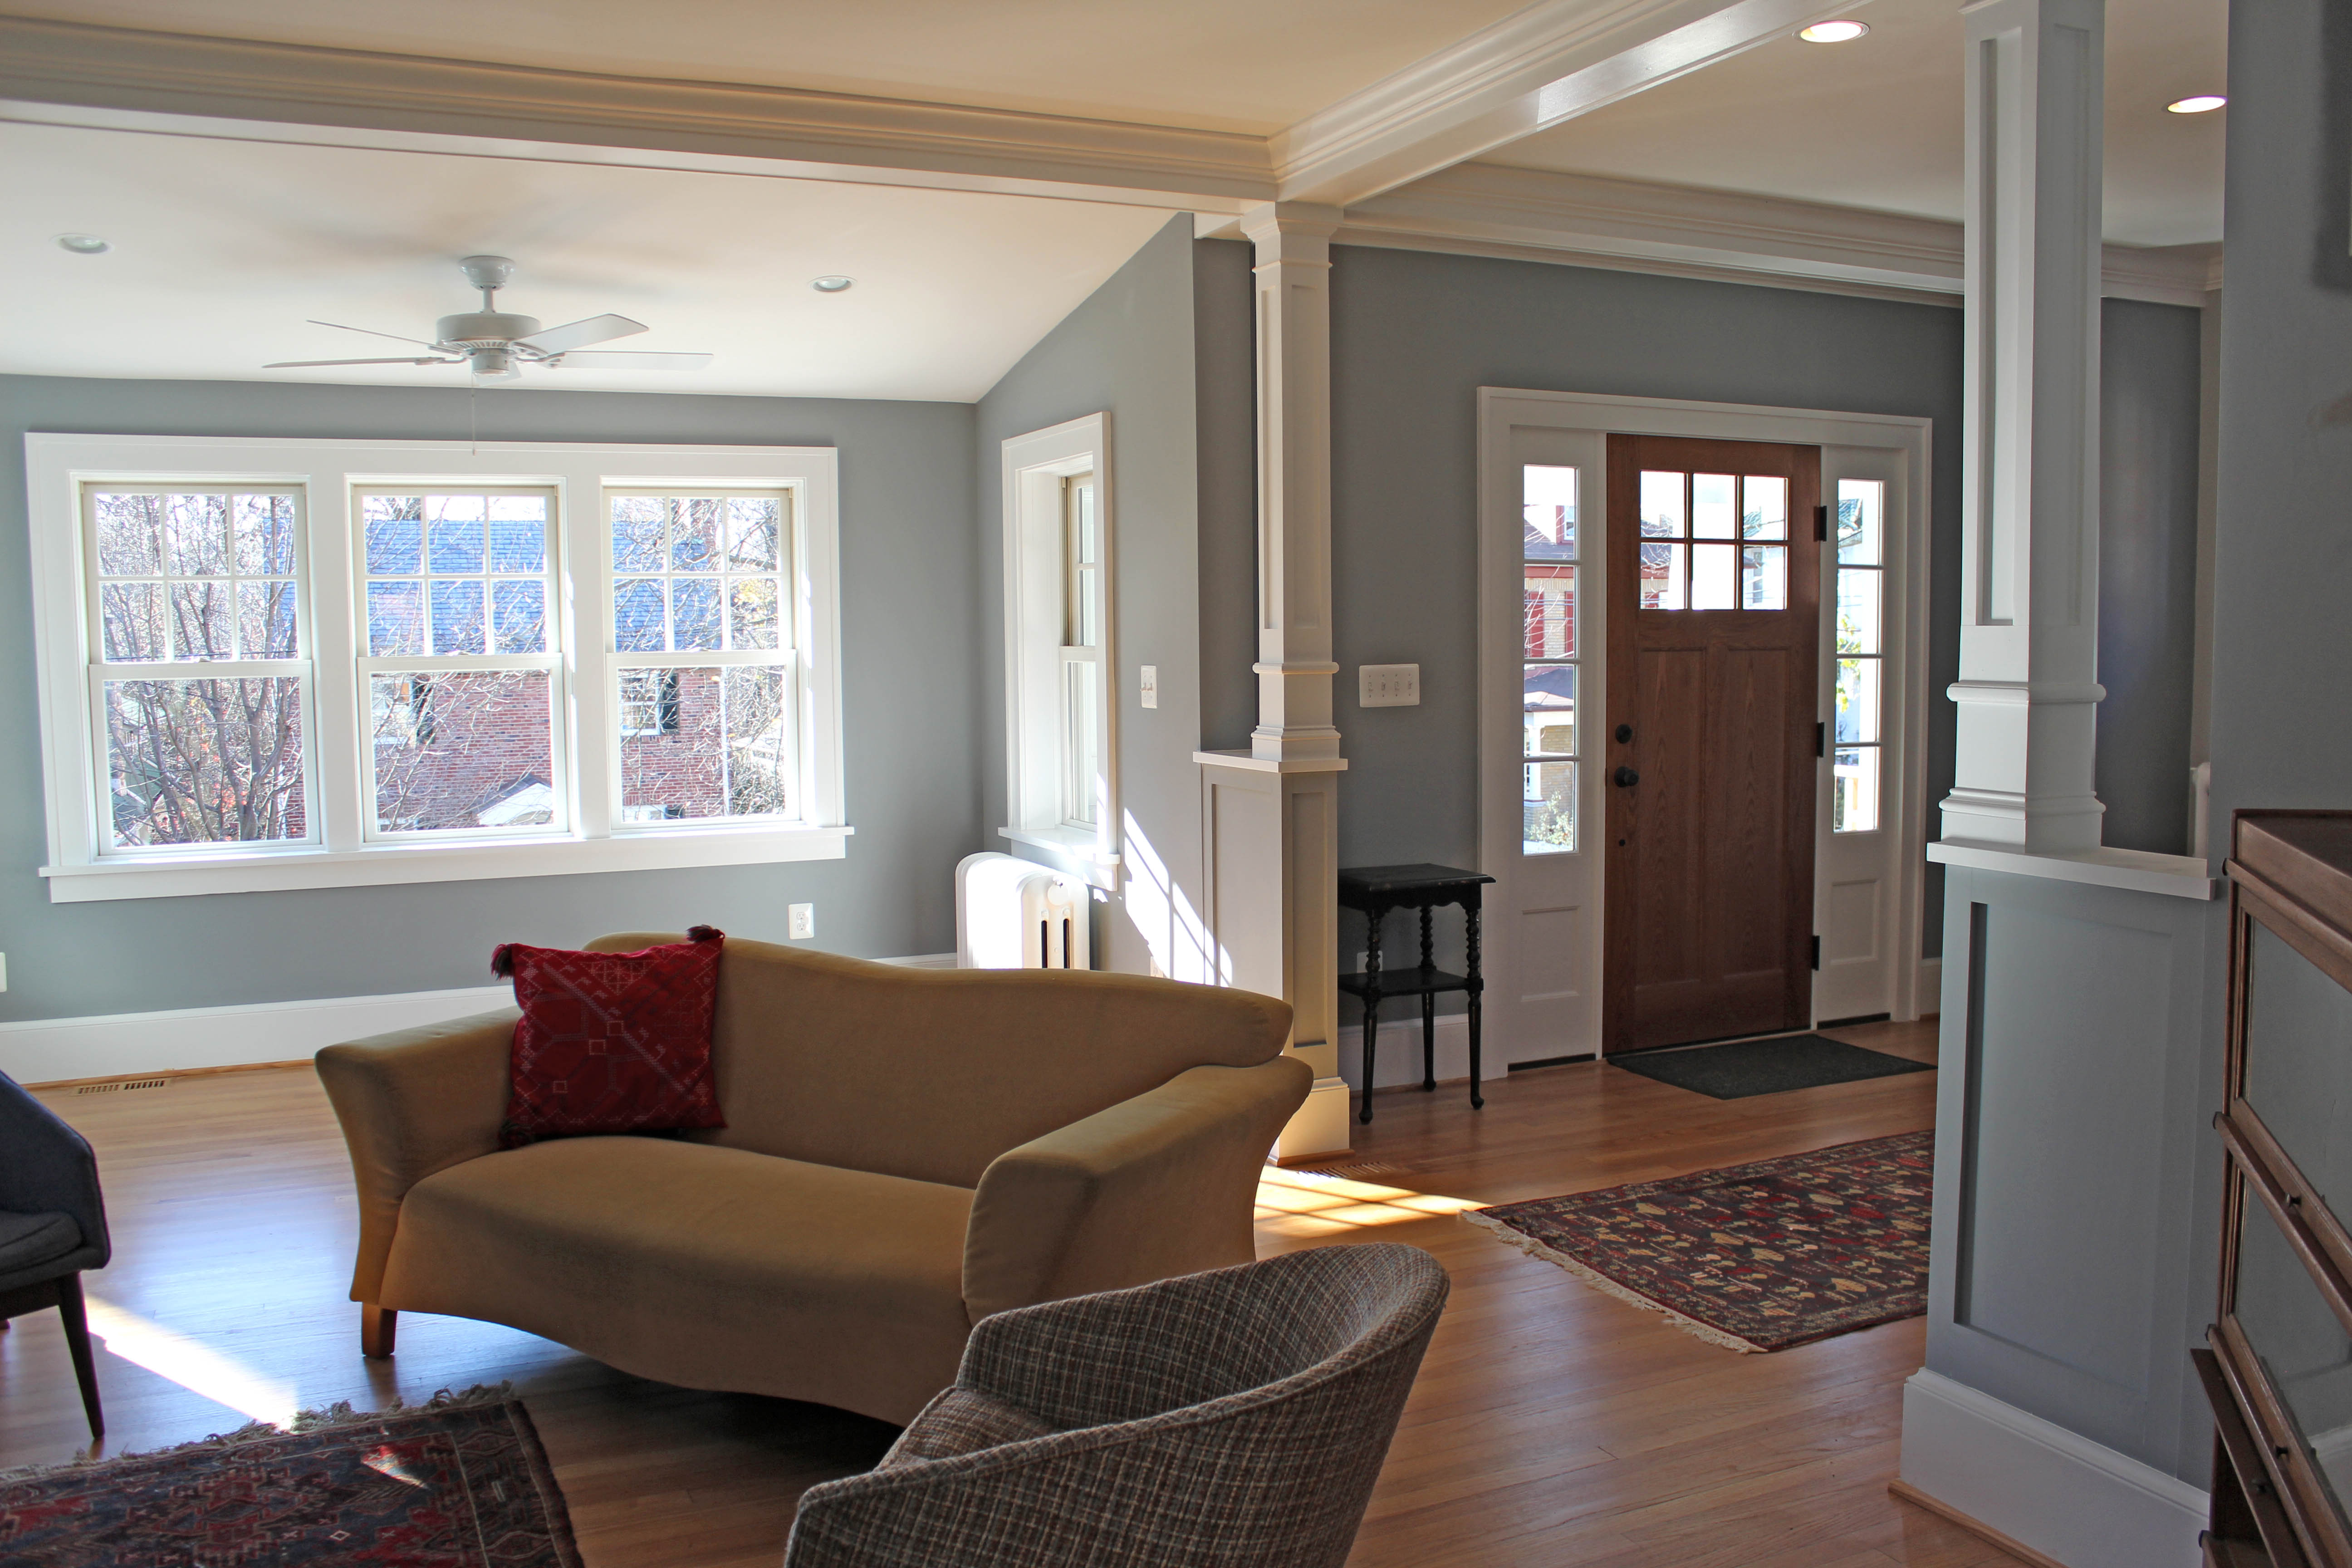 Renovated-living-room-and-front-door-ed-Opt